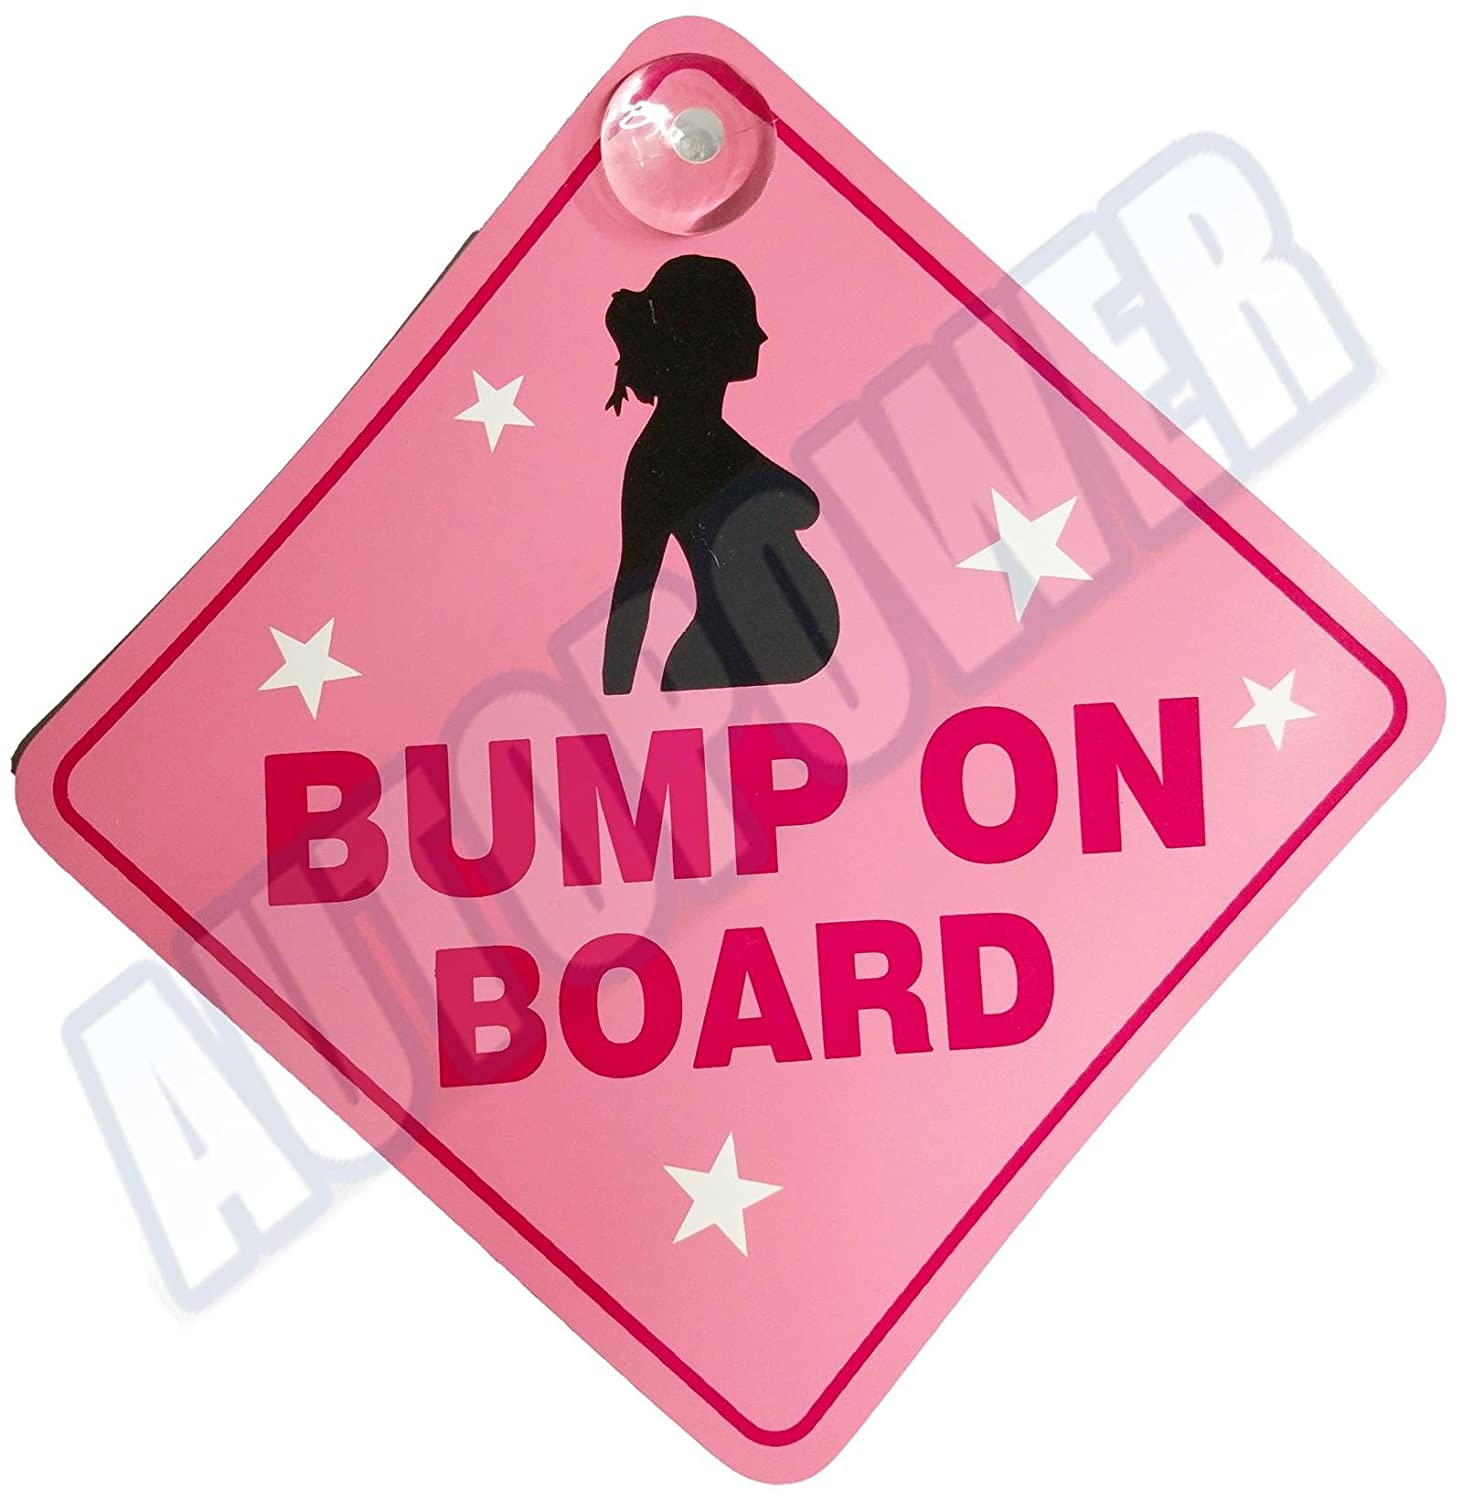 Bump On Board Suction Cup Safety Fun Car Display Window Badge Sign AutoPower